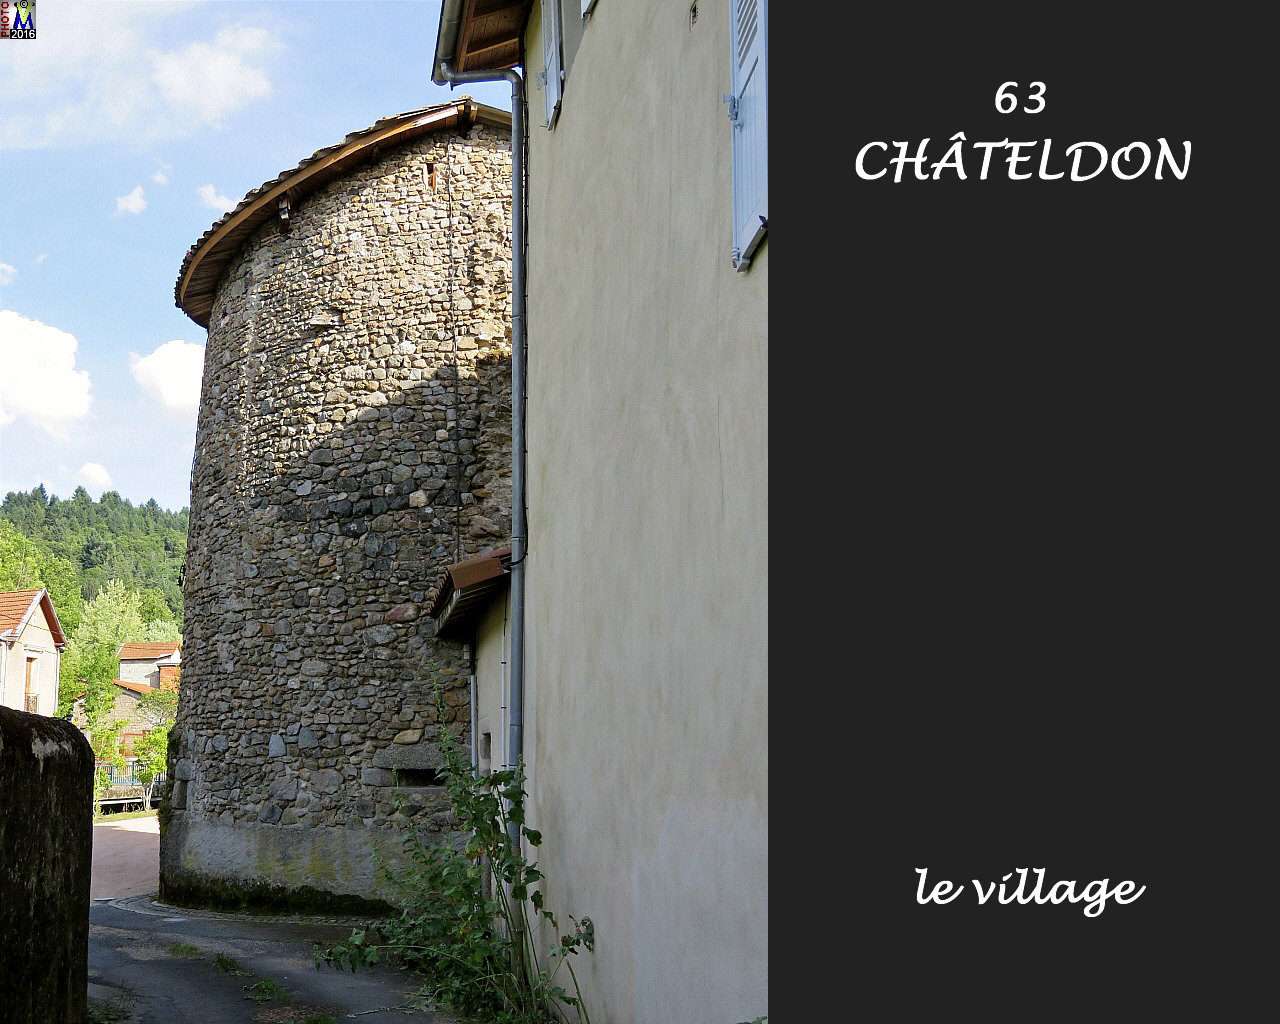 63CHATELDON_village_106.jpg